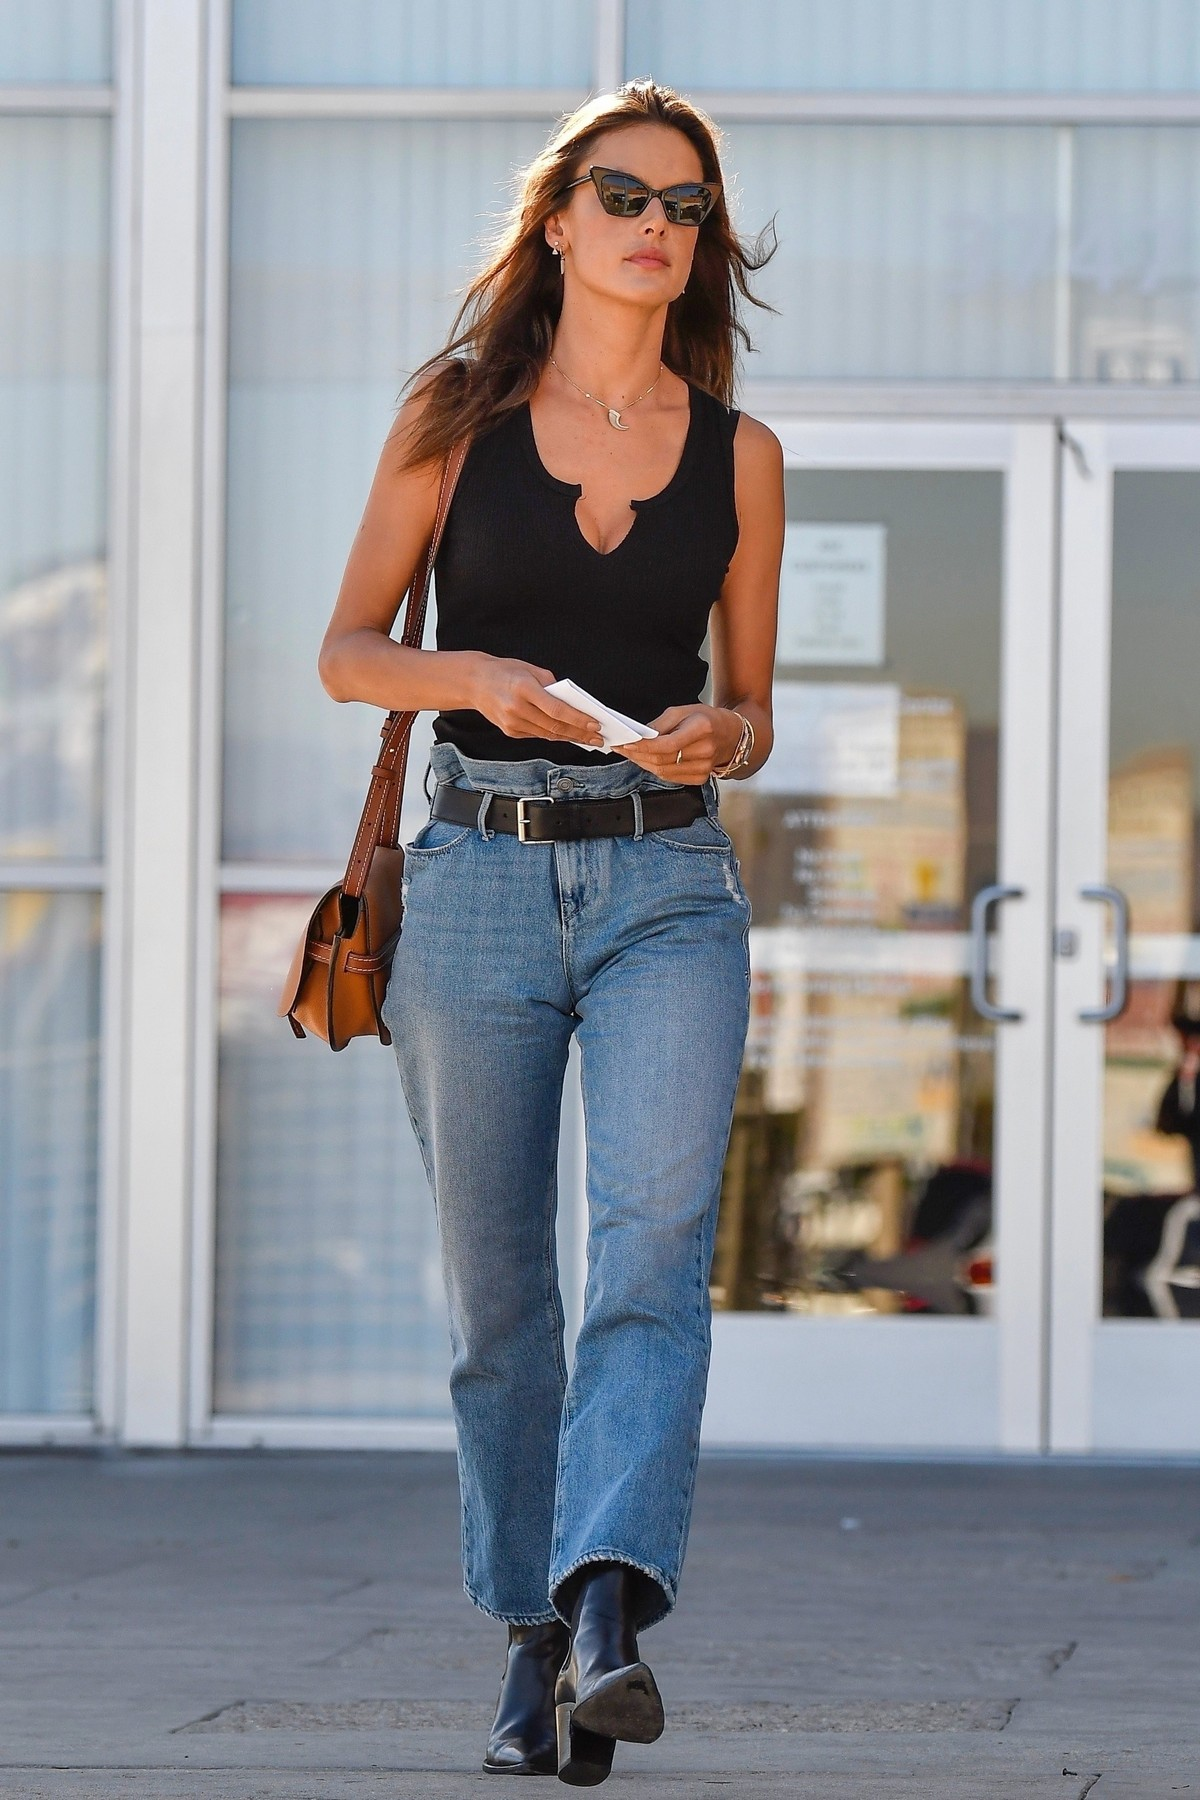 Alessandra Ambrosio in Black Top and Blue Jeans out in Los Angeles 2019/11/18 16